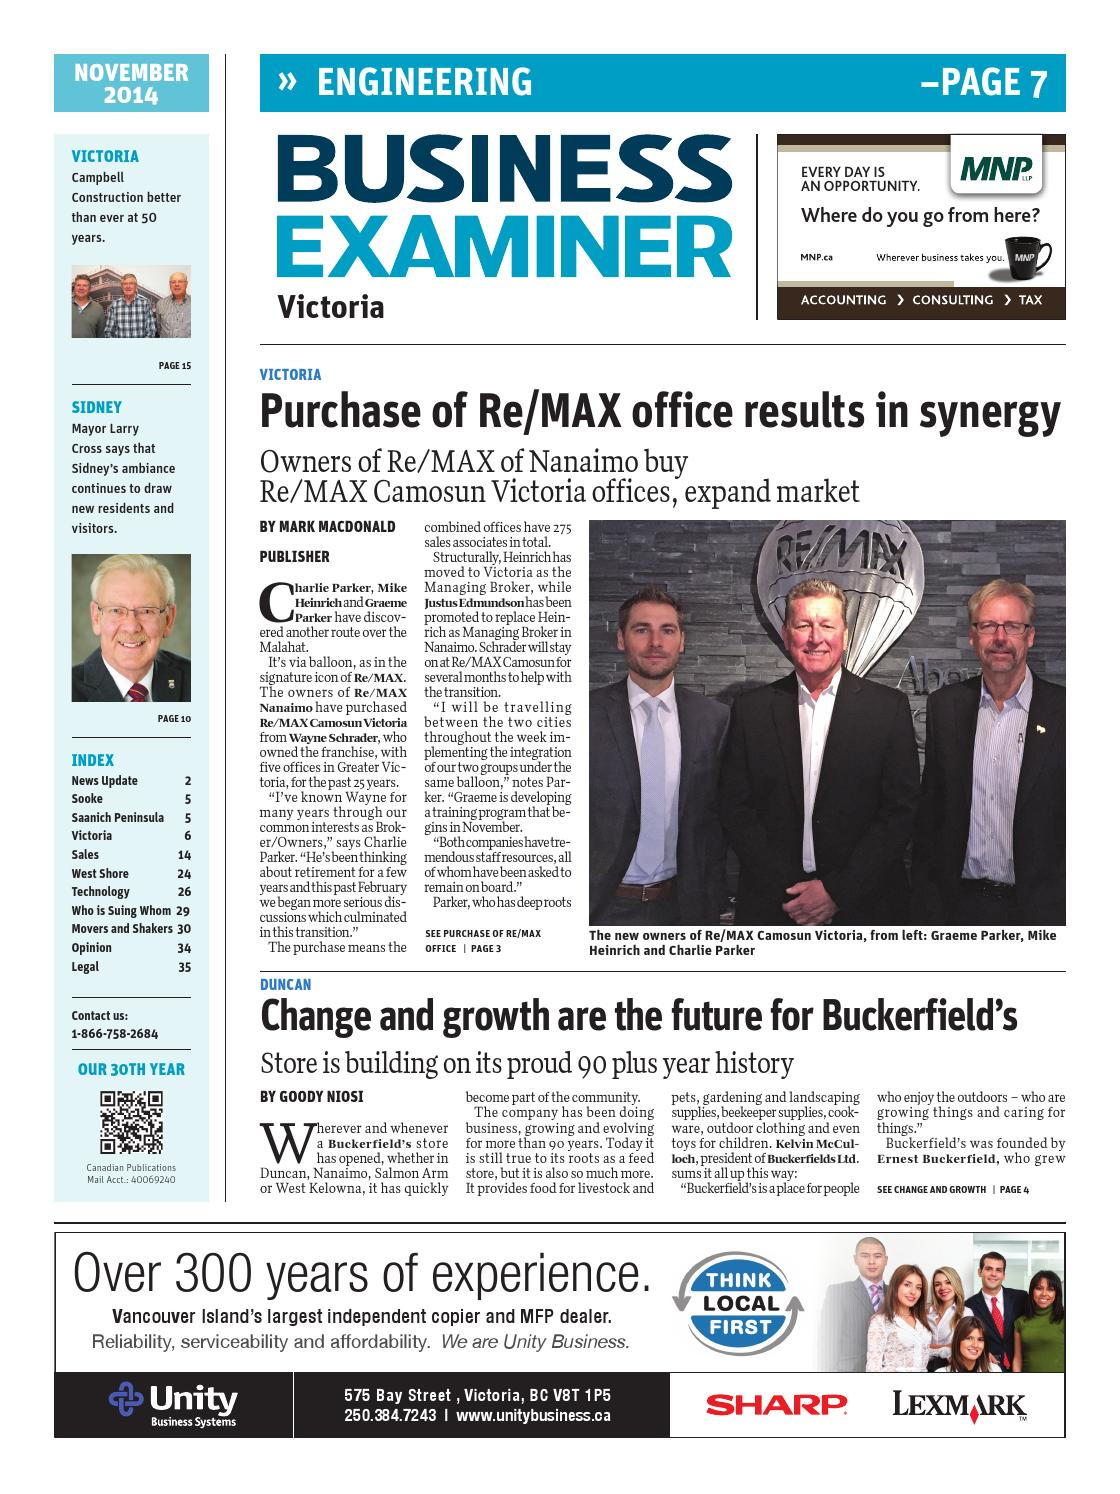 Business examiner victoria november 2014 by business examiner business examiner victoria november 2014 by business examiner media group issuu nvjuhfo Images